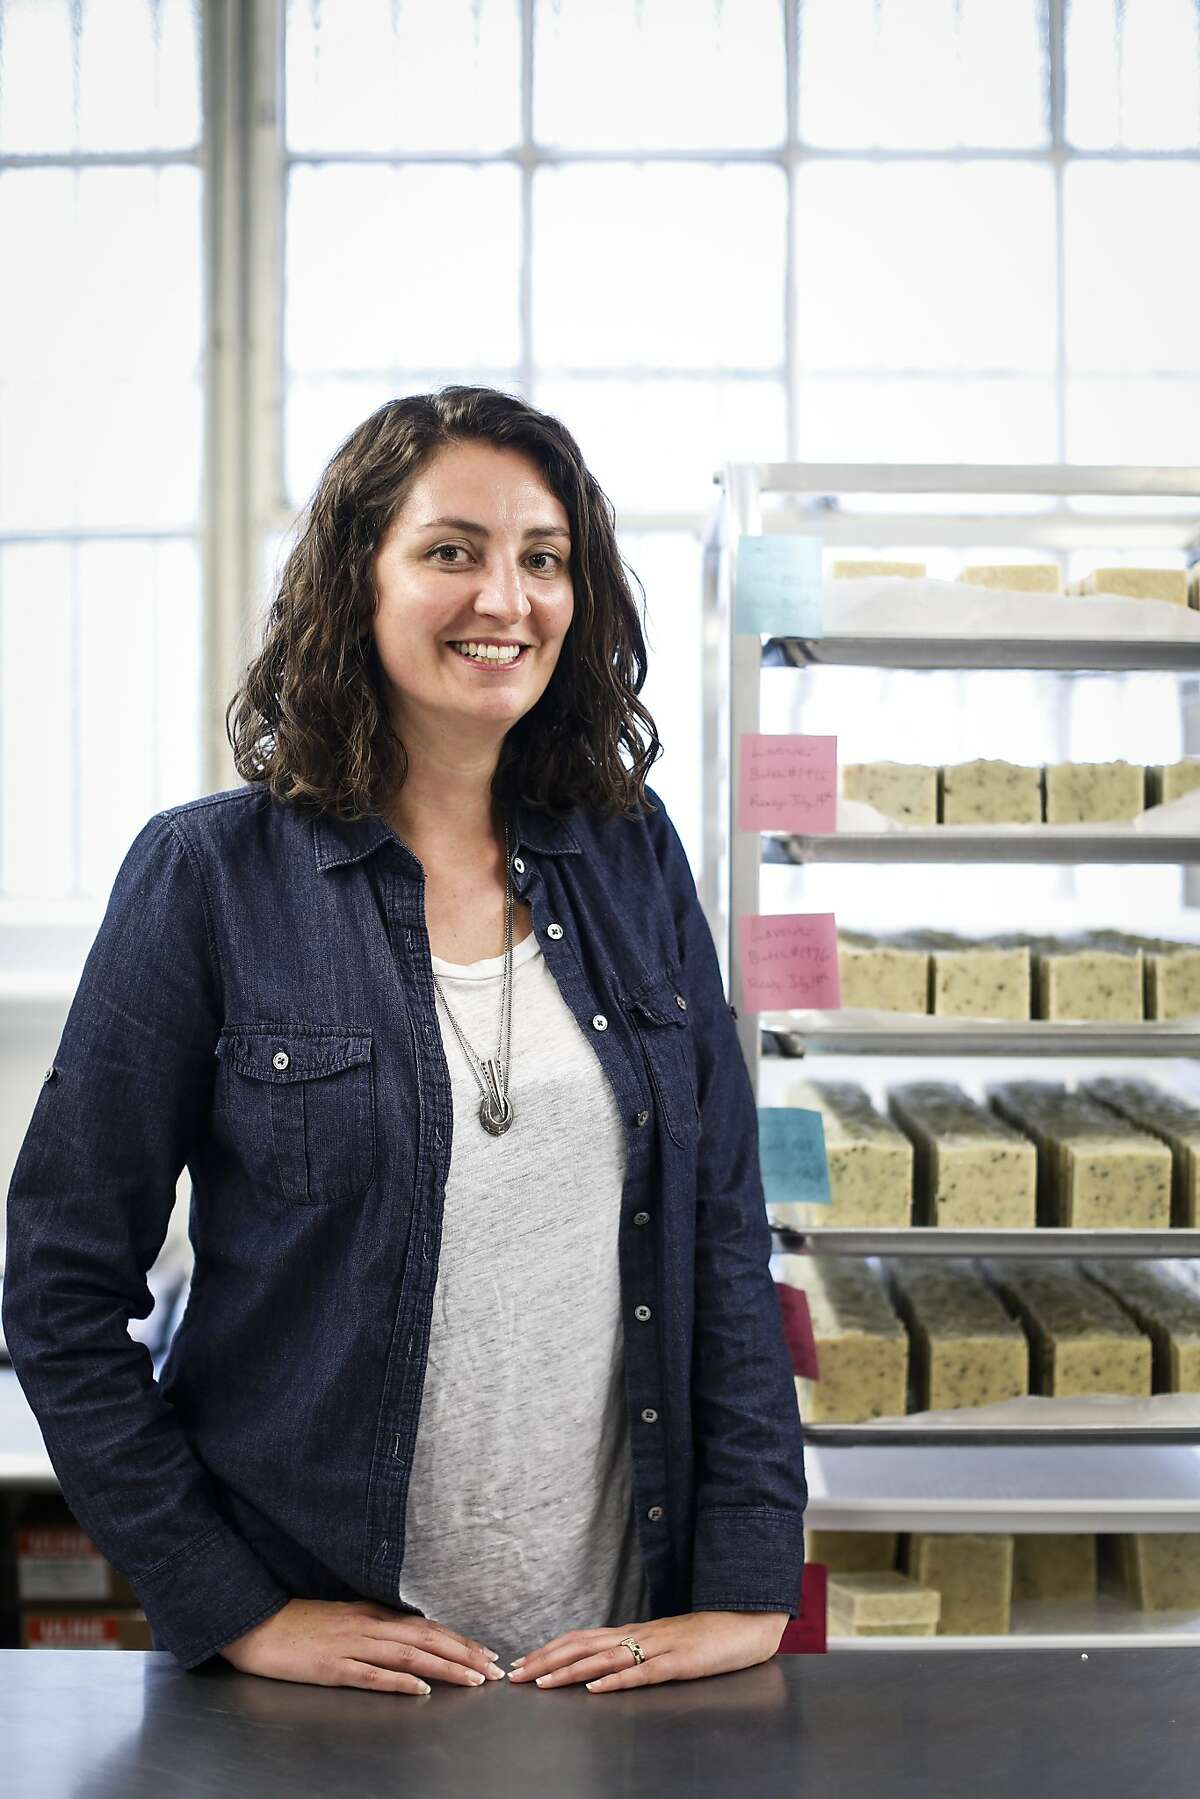 Alana Rivera of Etta+Billie is seen on Wednesday, July 8, 2015 in San Francisco, Calif. Rivera named the company after her grandmothers.